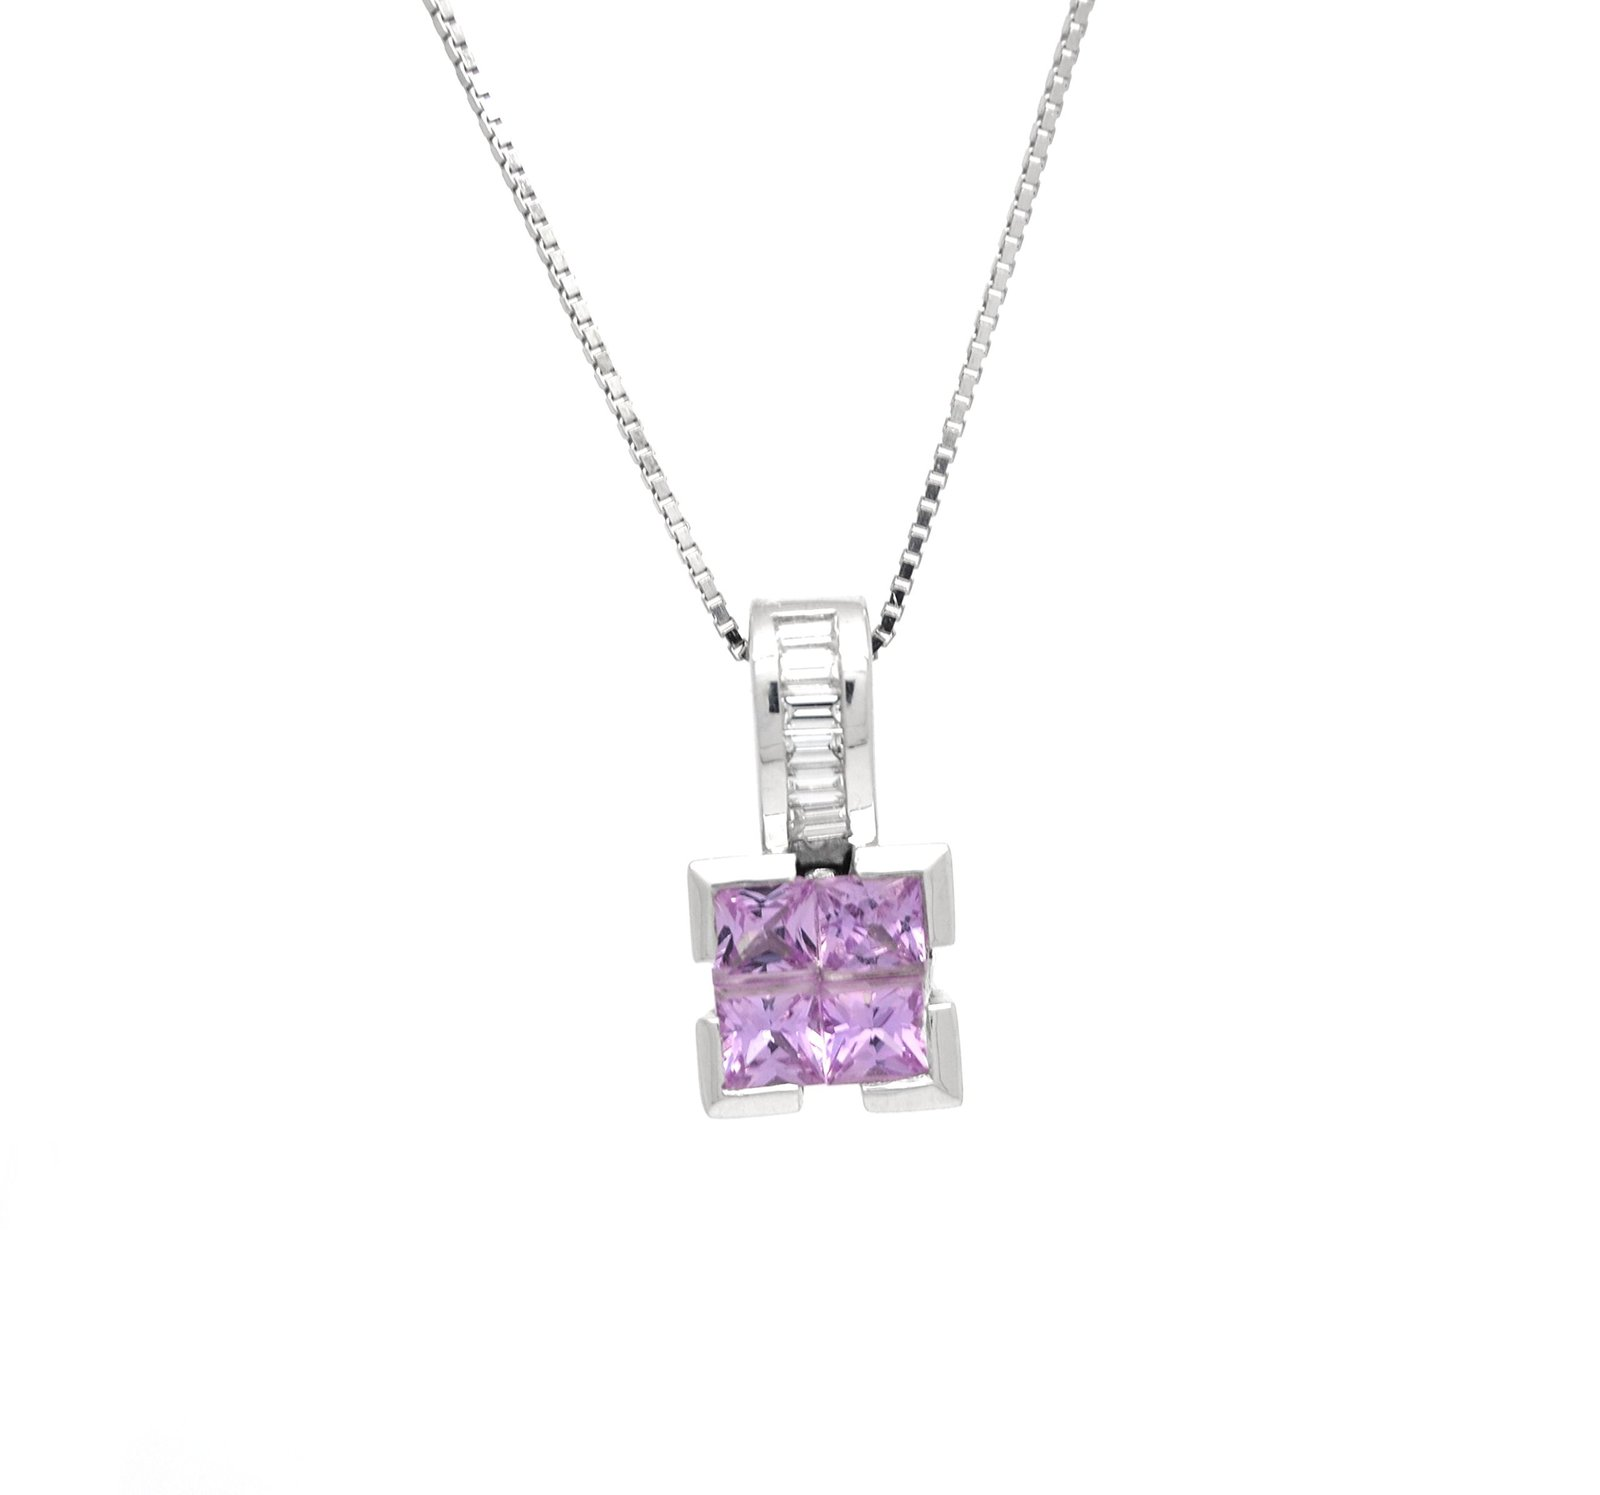 14 K White Gold Genuine Pink Topaz Pendant